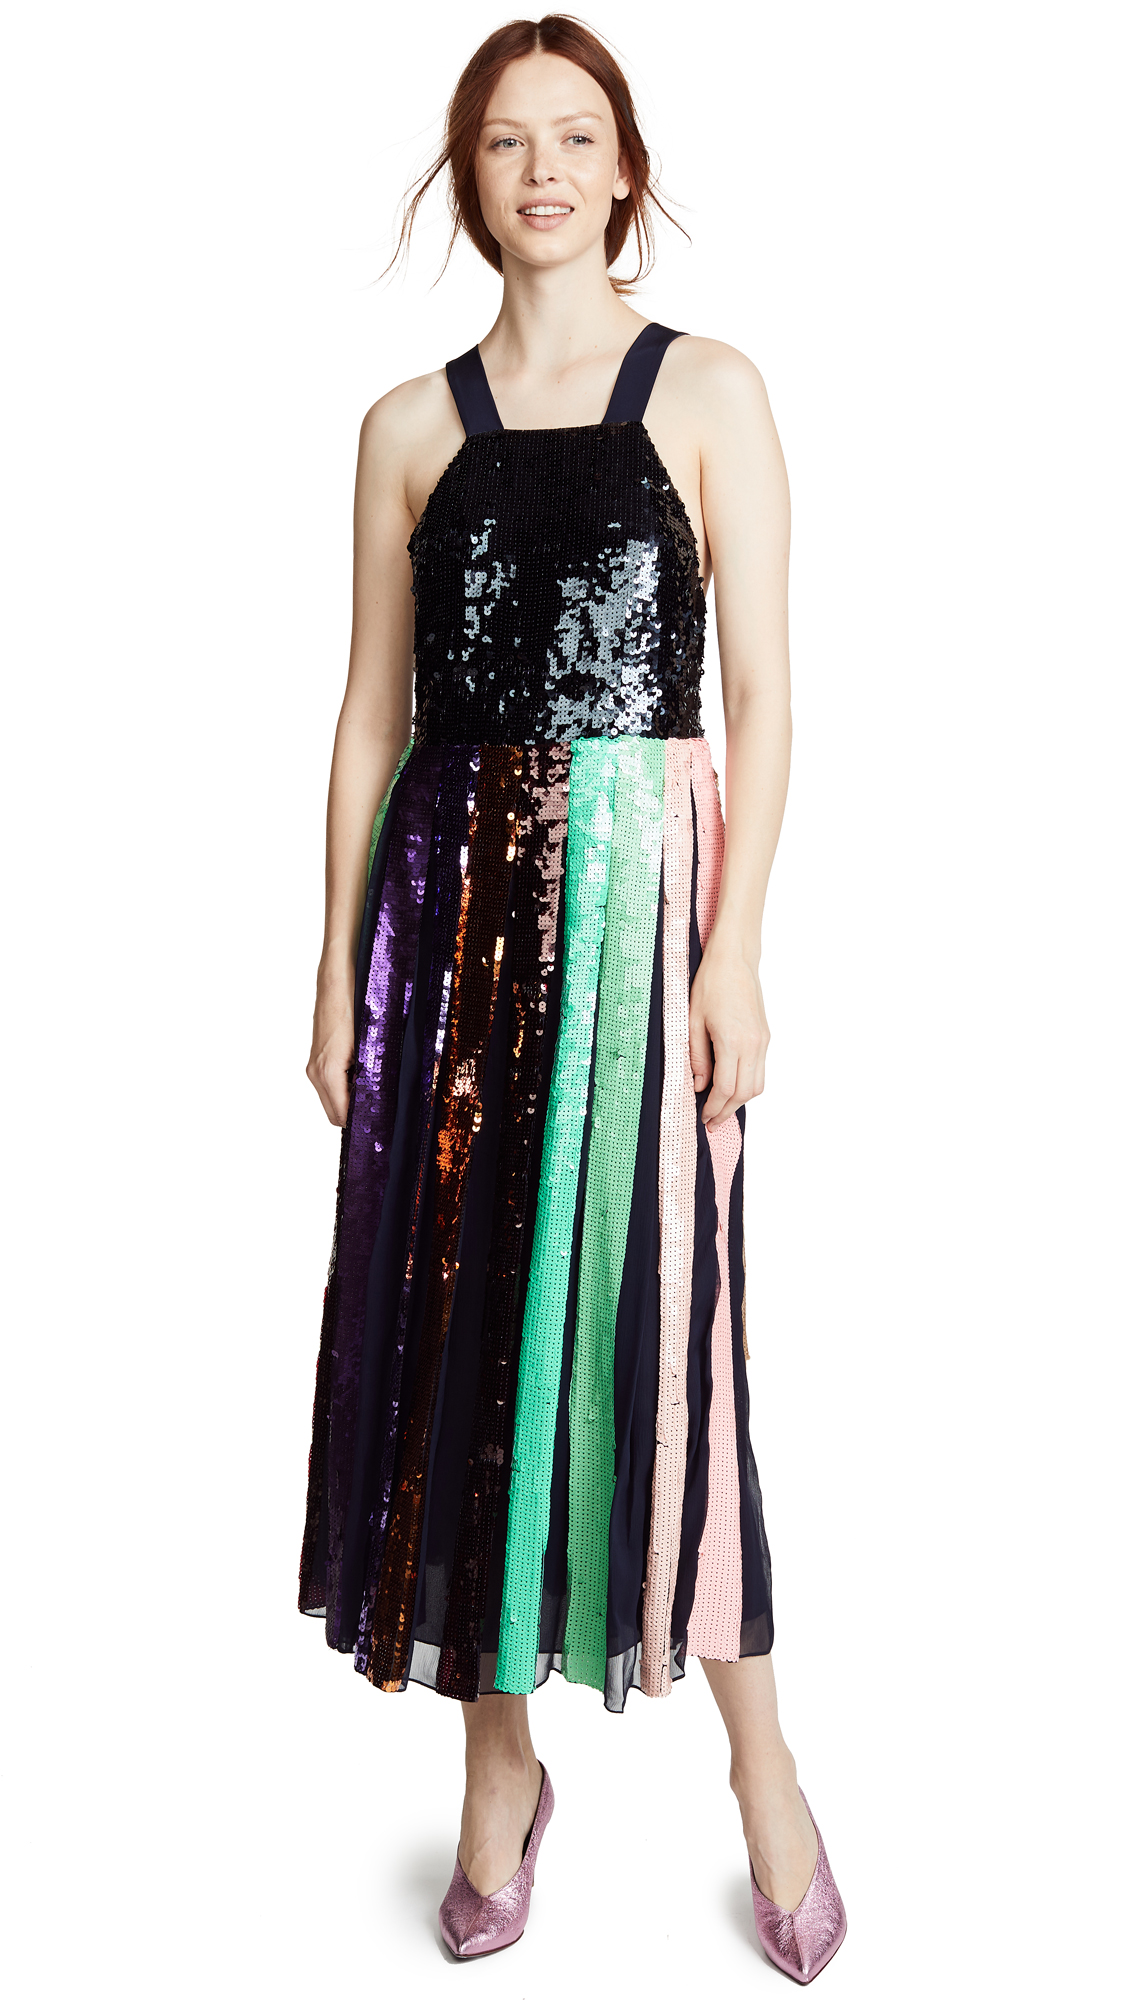 Tibi Beaded Sequin Overall Dress - Stripe Multi